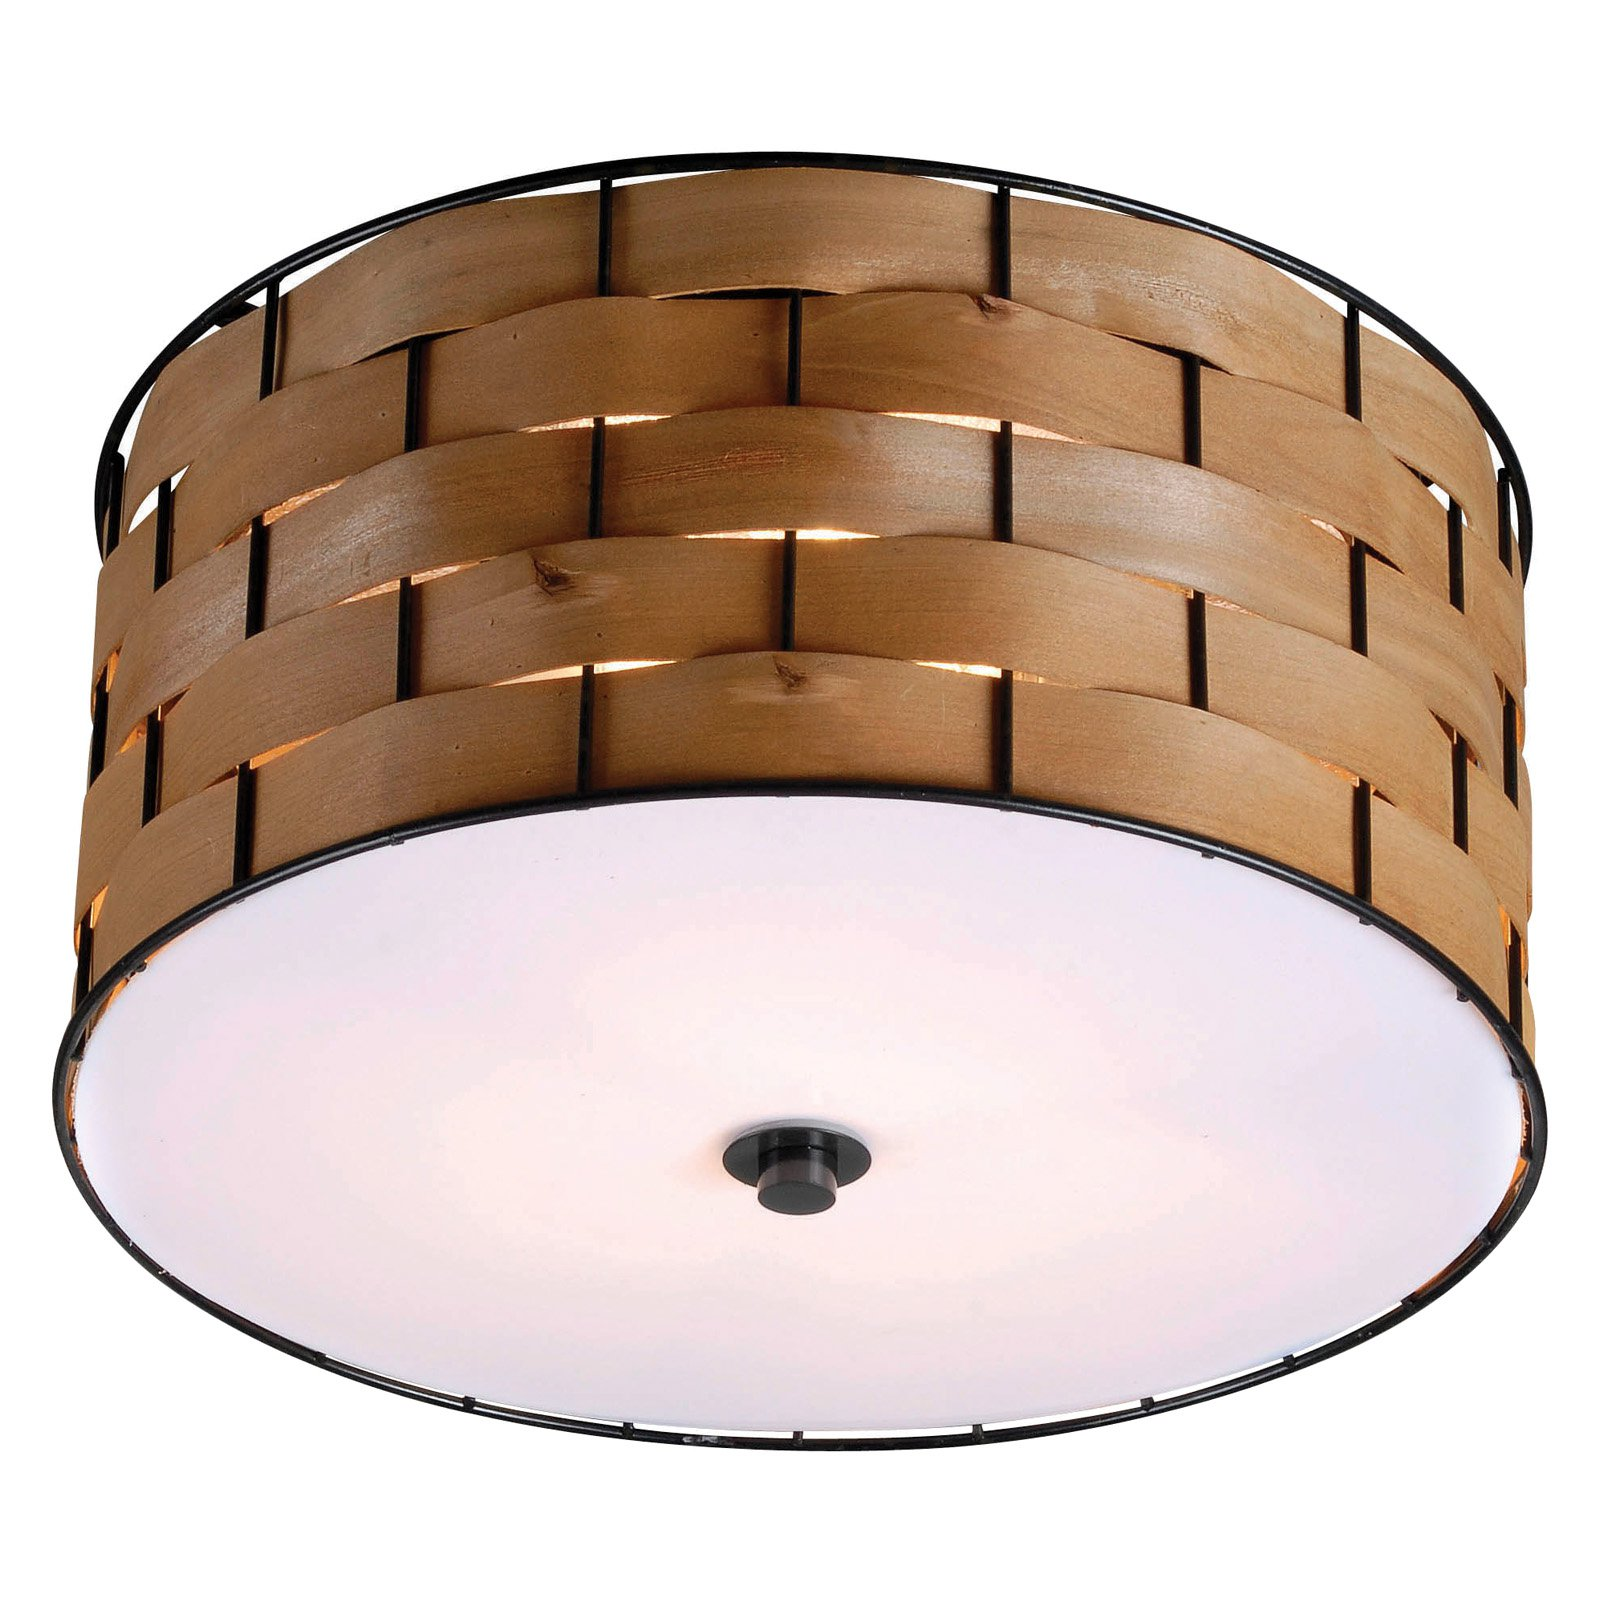 Kenroy Home Shaker Dark Woven Wood 3 Light Flush Mount